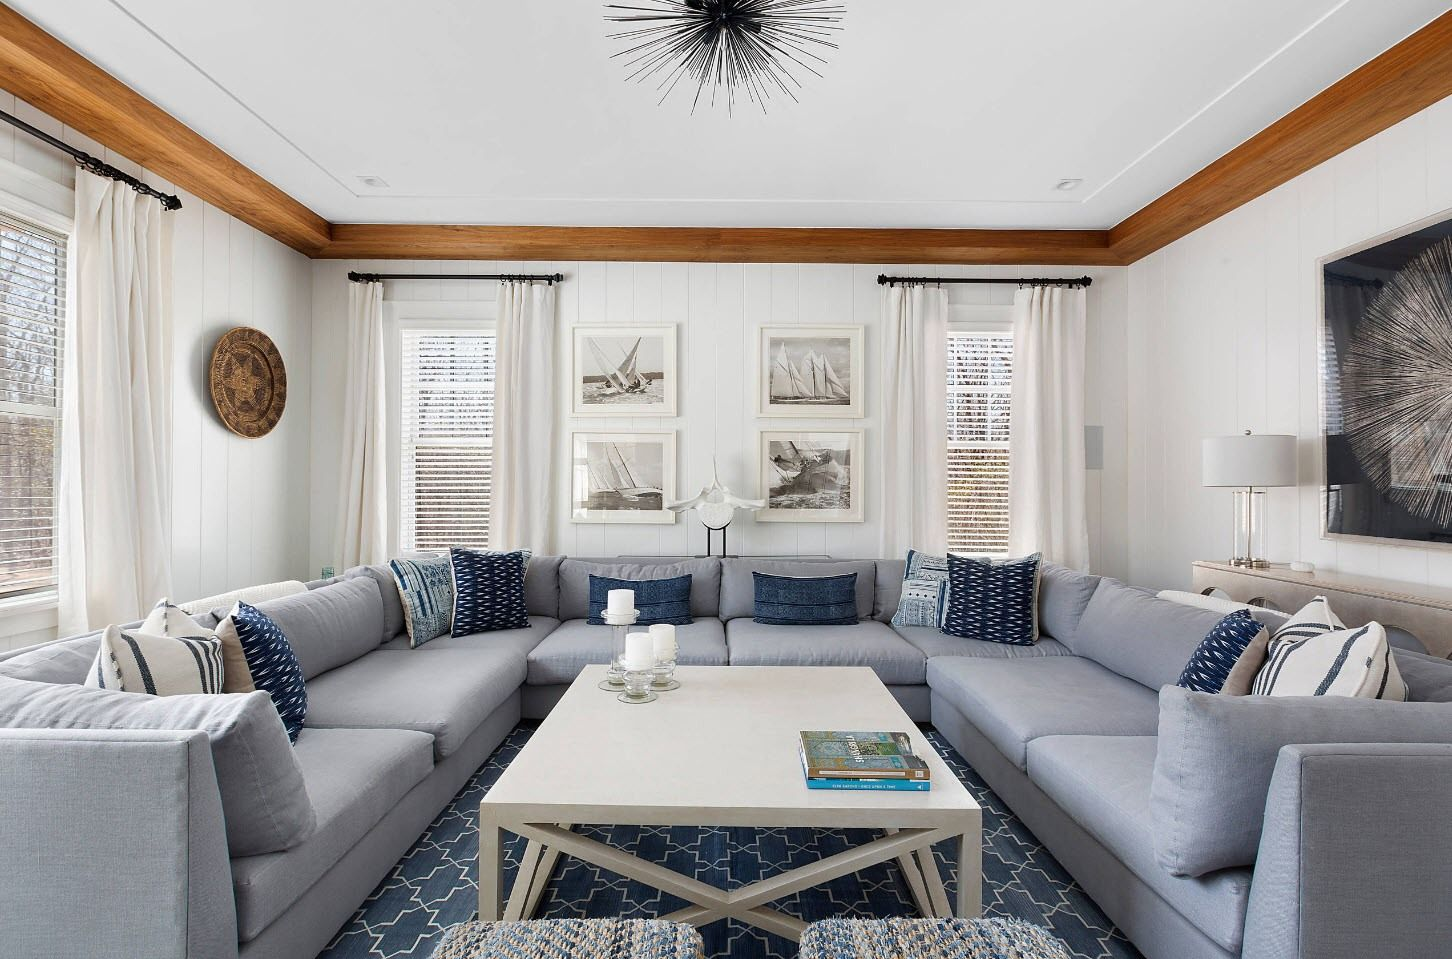 Wooden trimmed transition in the living room with u-shaped upholstered sofa